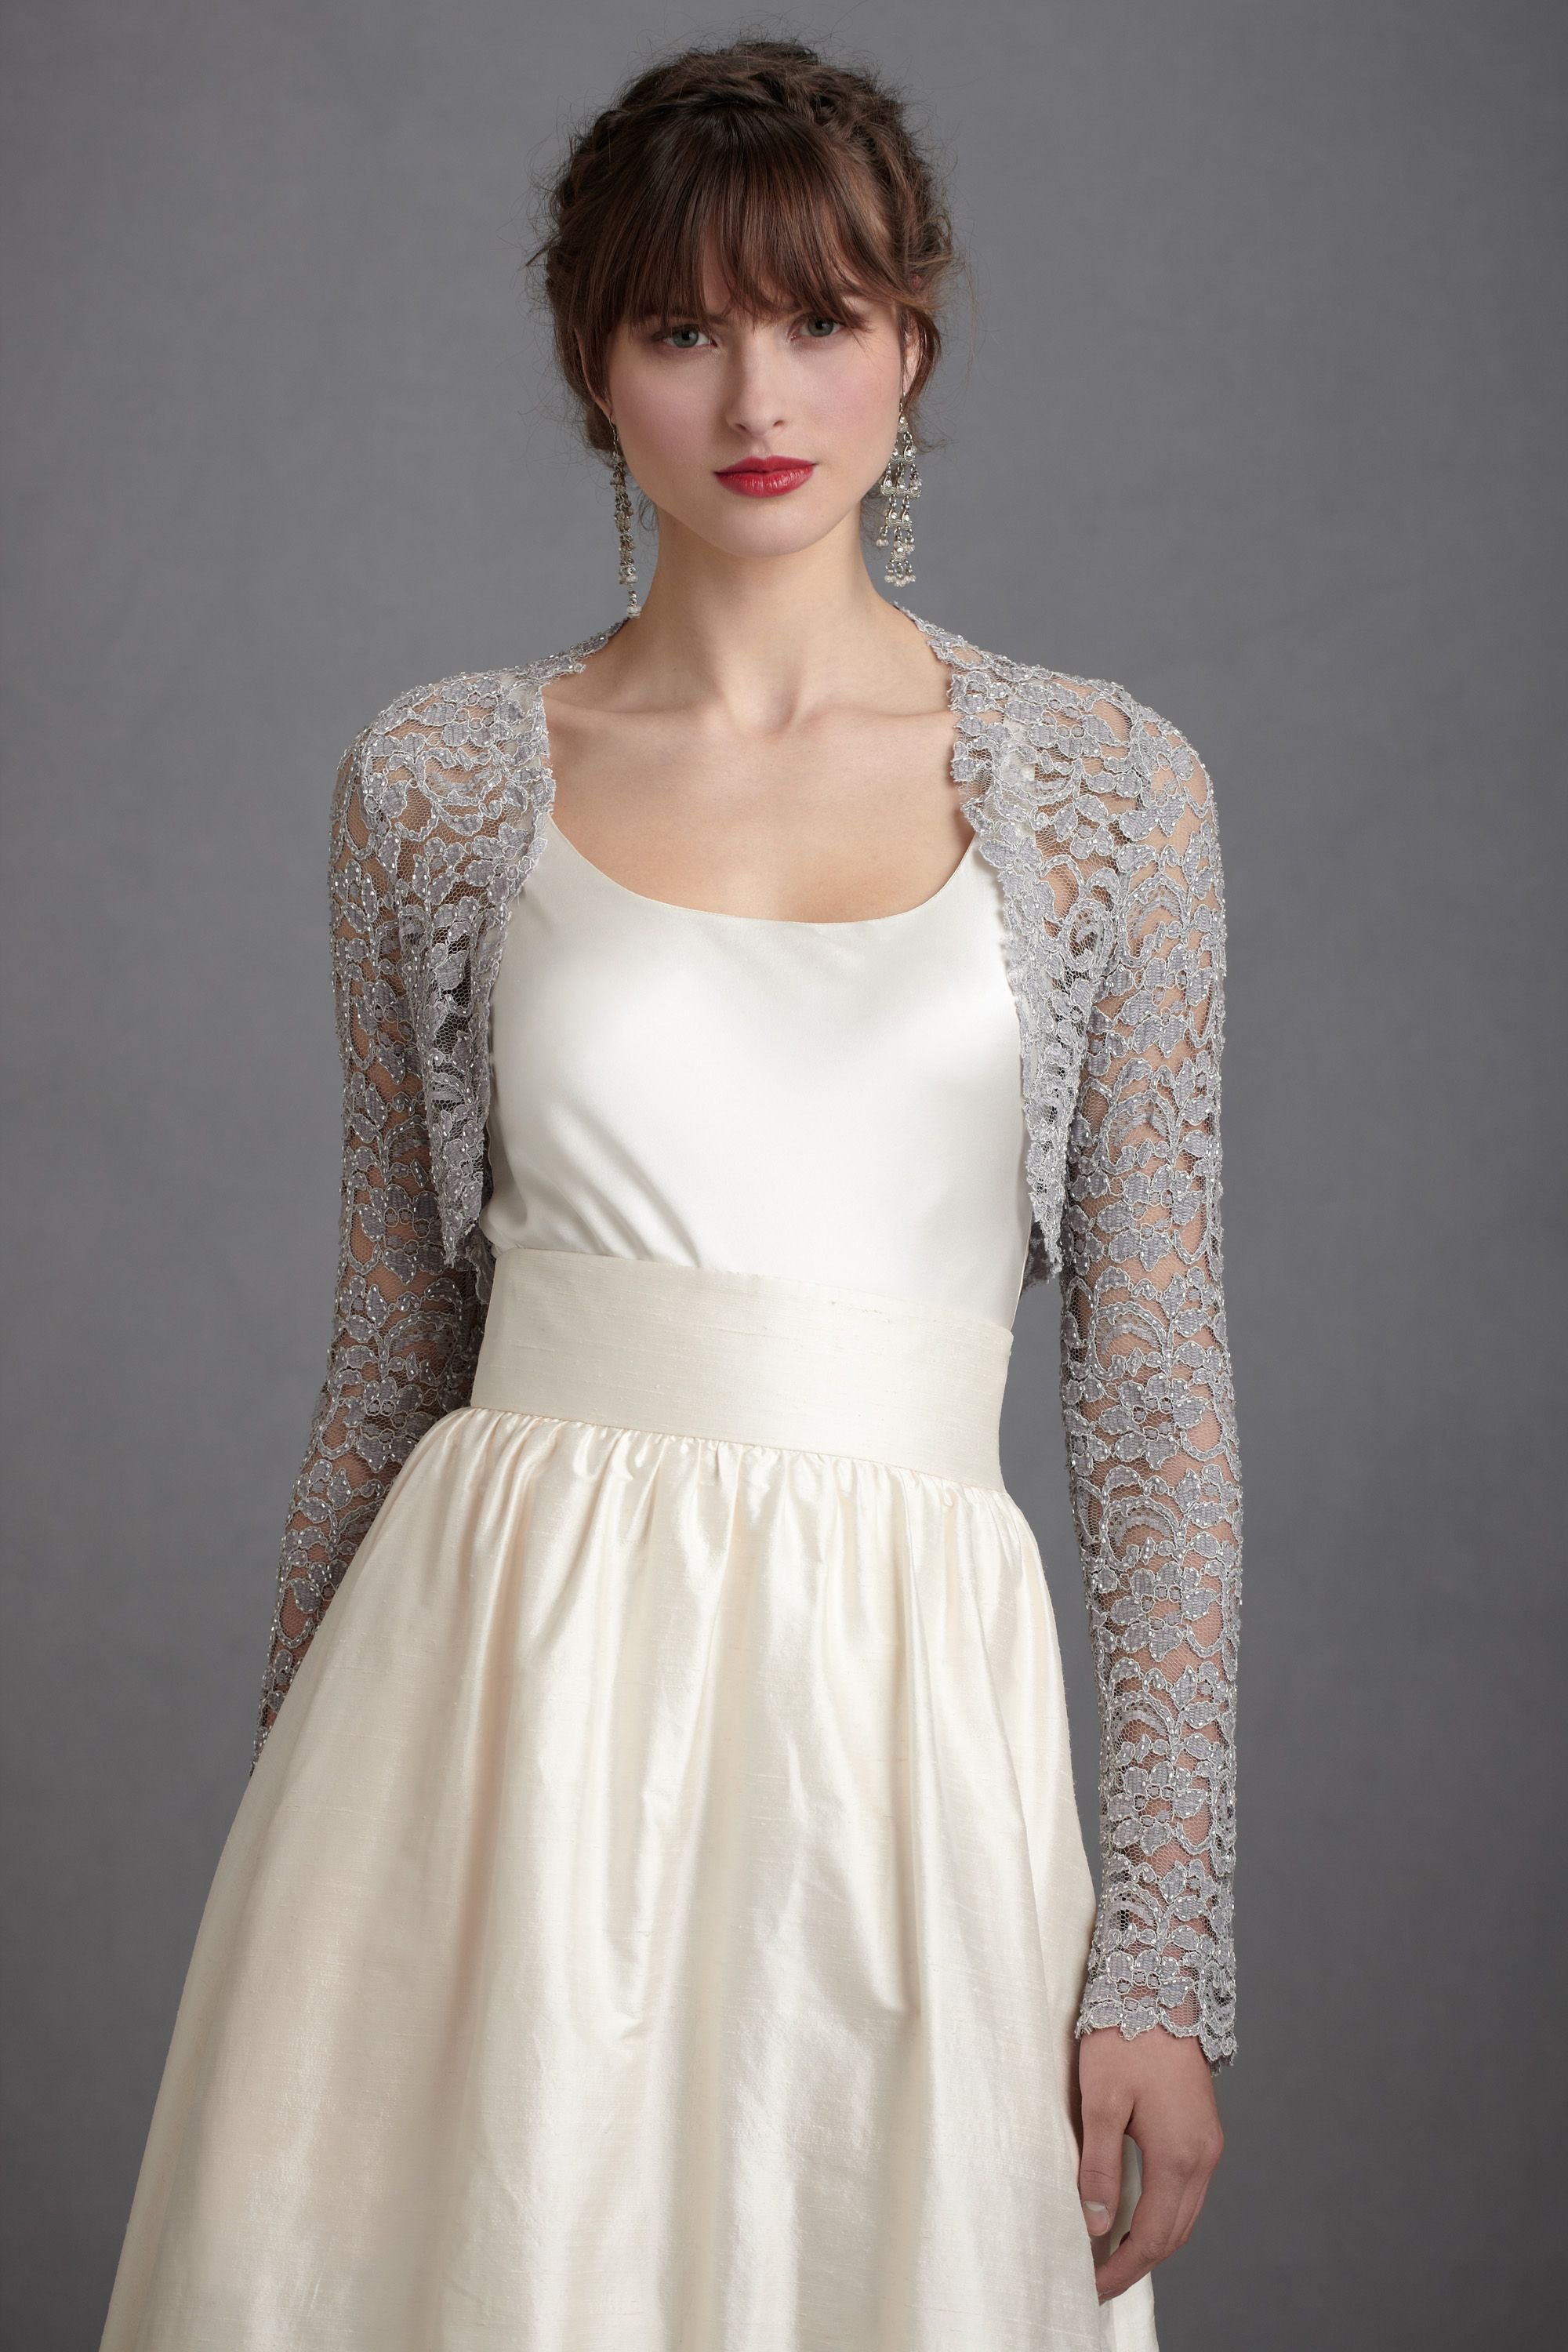 Lady Grey Shrug In Shop Bridesmaids From Bhldn Wedding Dress